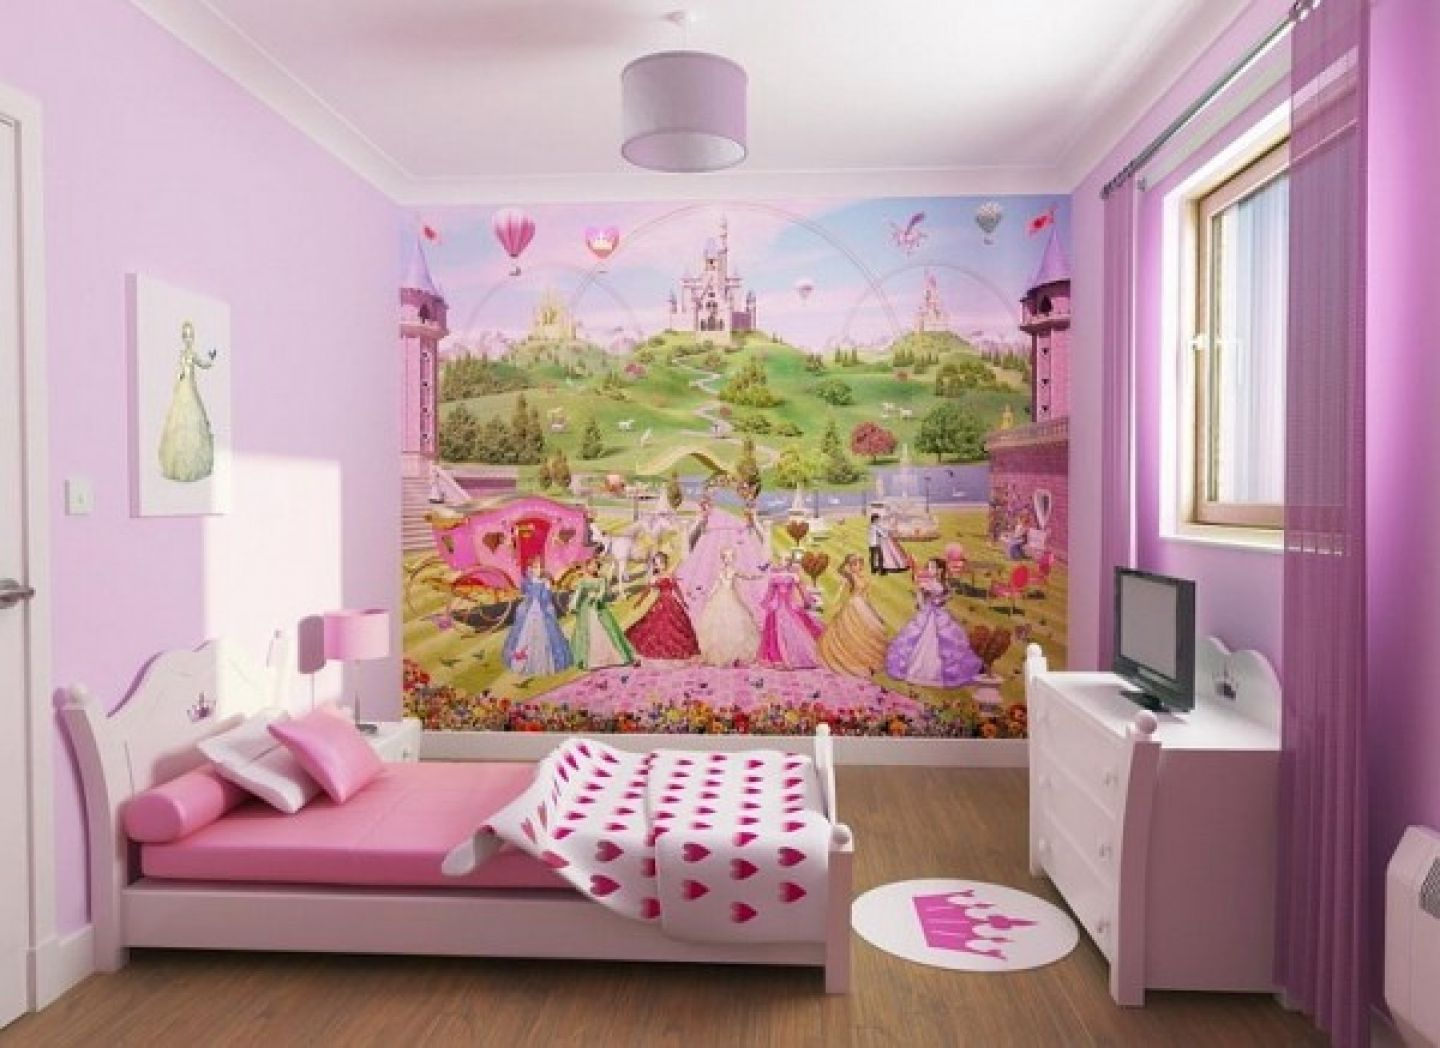 Girls Bedroom Decorating Ideas Amusing Girls' Bedroom Style  Bedrooms Small Bedroom Decorating And Room Decorating Inspiration